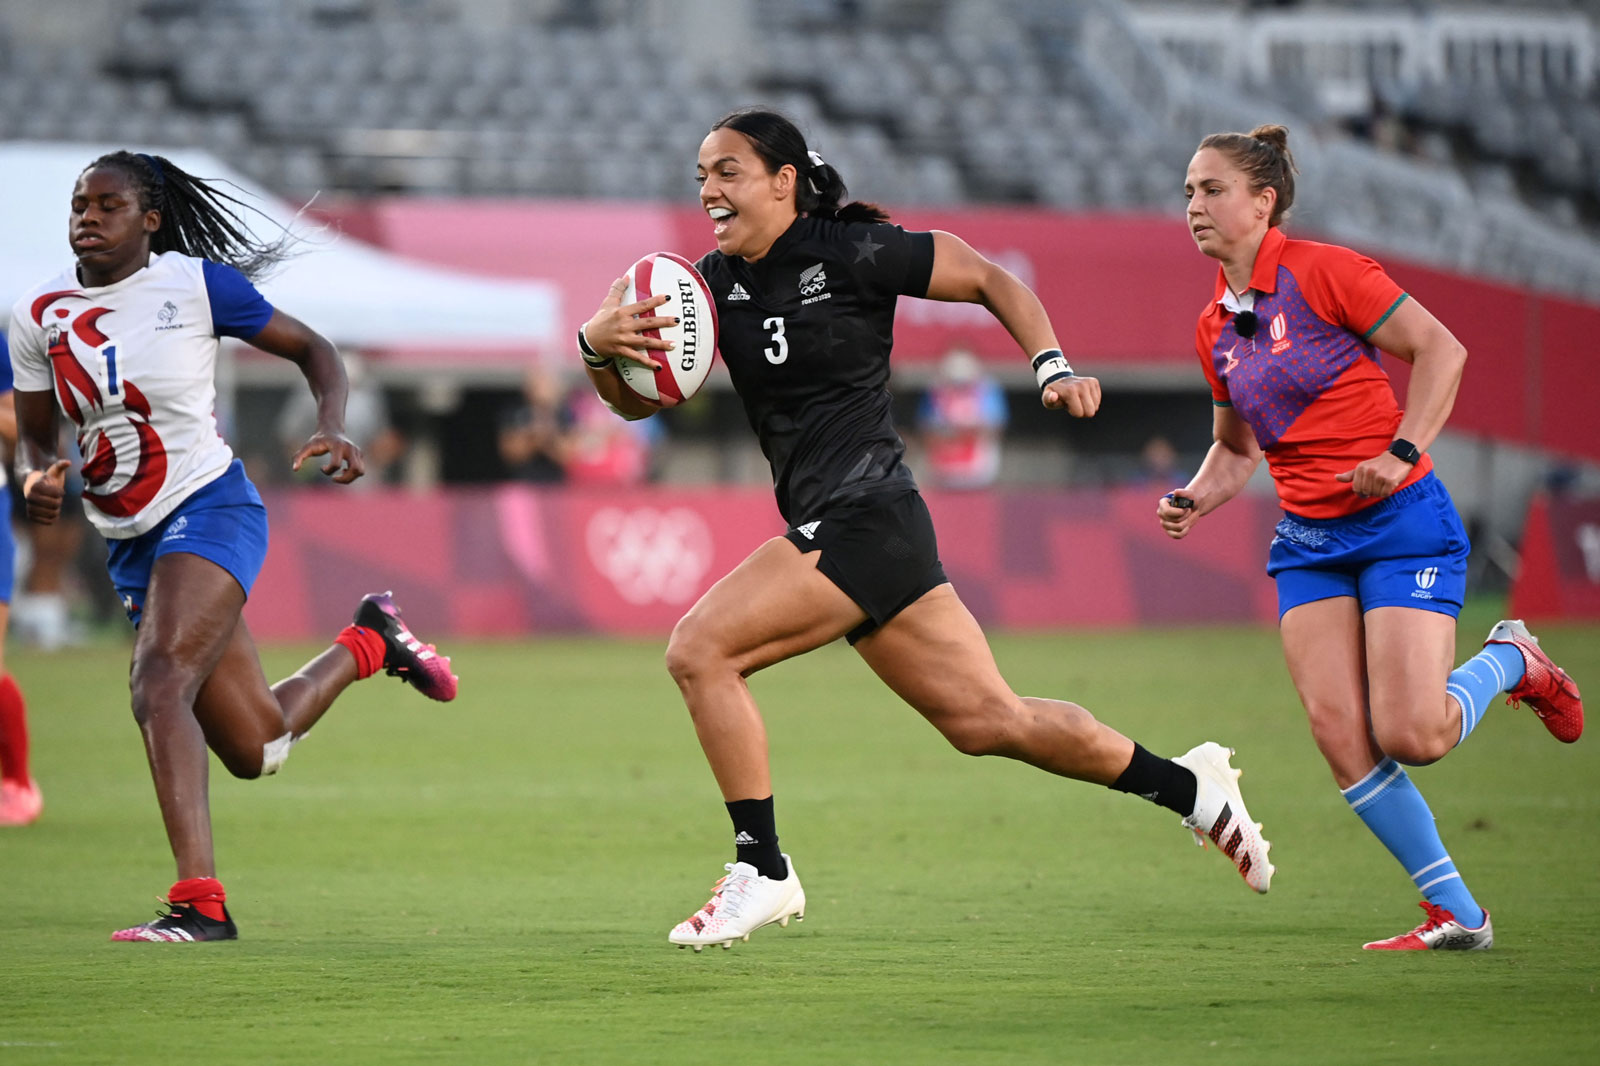 New Zealand's Stacey Fluhler (C) runs to score a try in the women's rugby sevens final between New Zealand and France at the Tokyo Stadium.